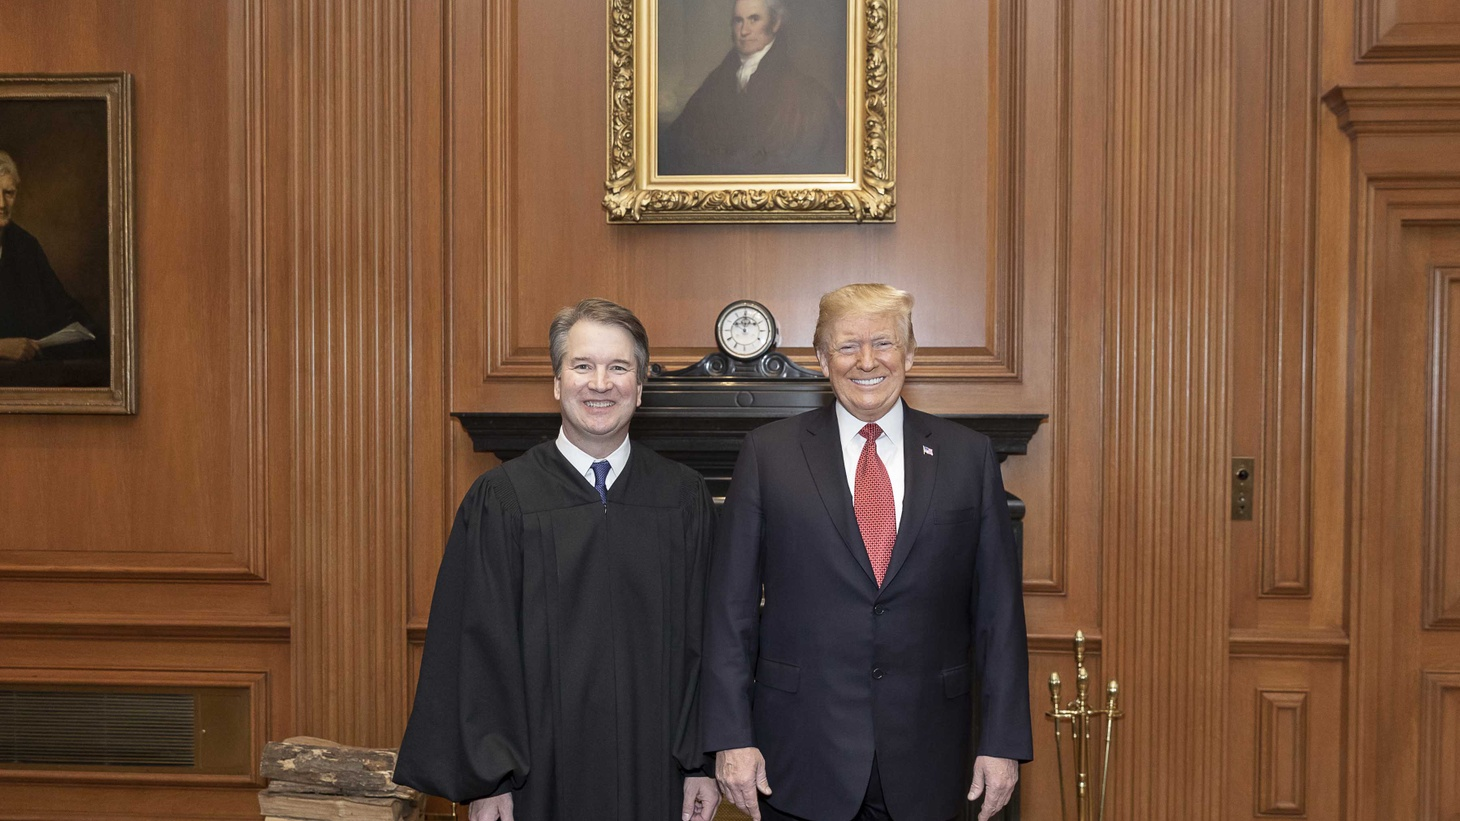 President Donald J. Trump and Supreme Court Justice Brett Kavanaugh pose for photos Thursday, Nov. 8, 2018, during the investiture of Justice Kavanaugh at the Supreme Court of the United States in Washington, D.C.